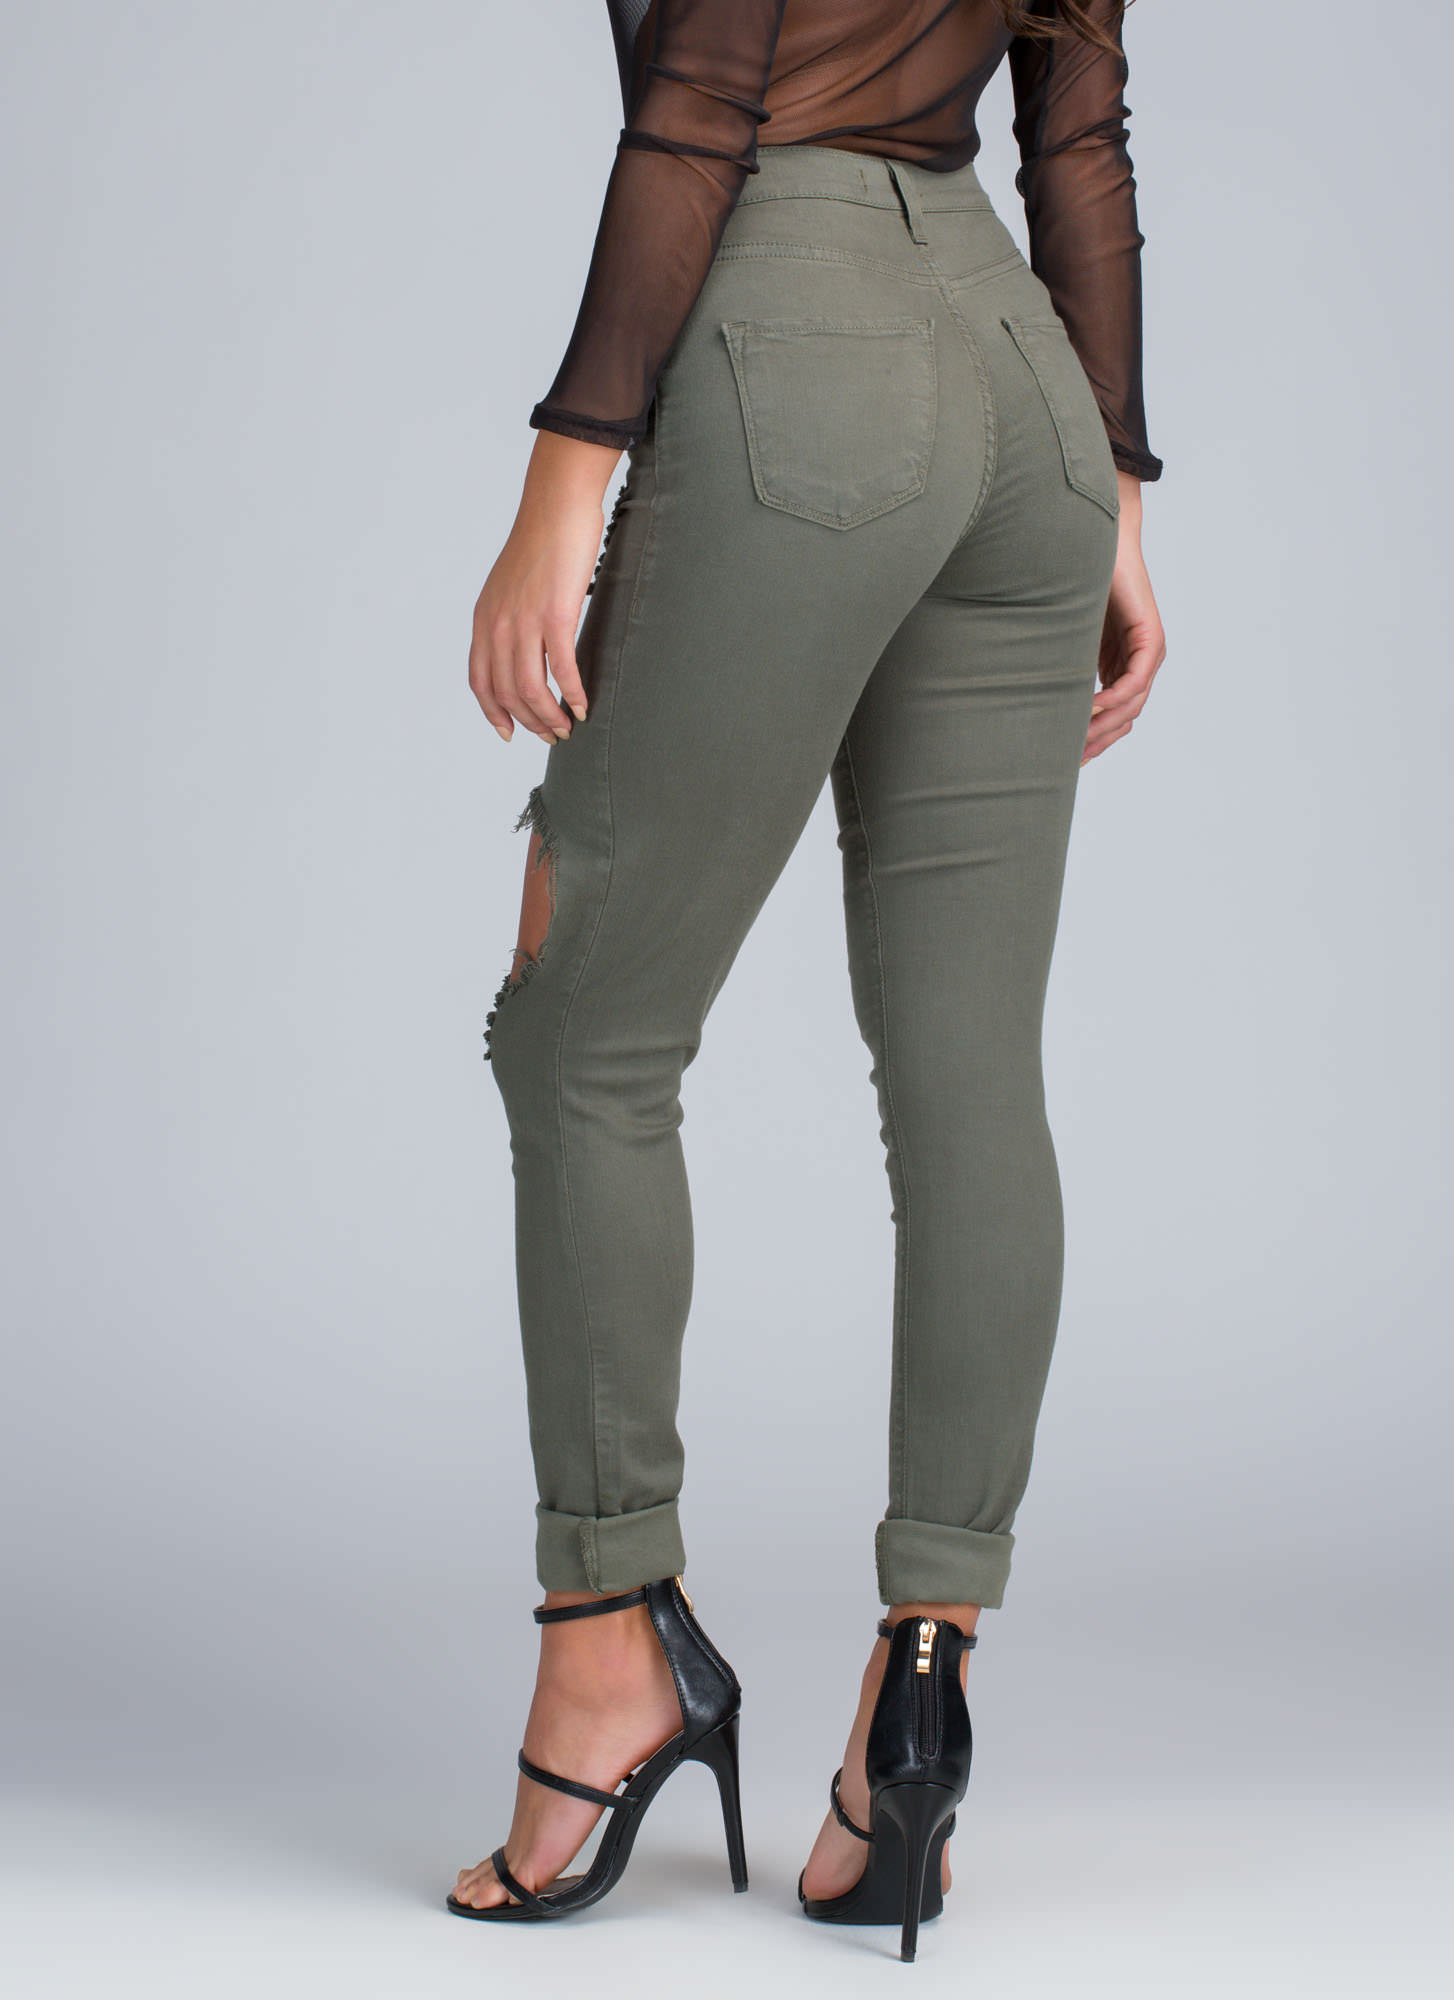 Shred-y To Rock Distressed Skinny Jeans OLIVE